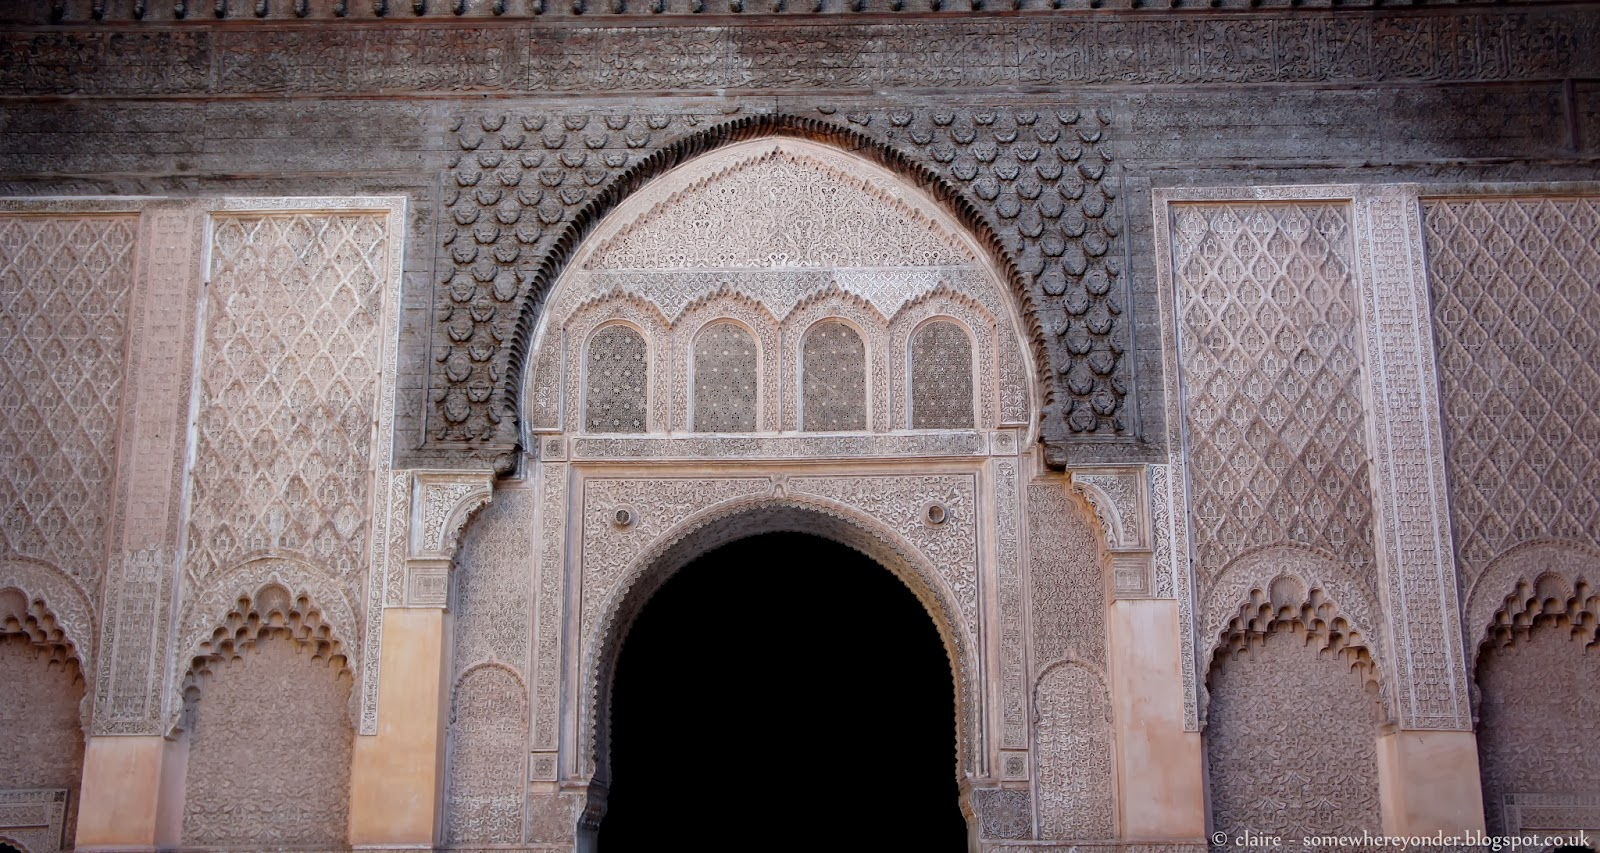 Inner courtyard at Ben Youssef Madrasa, Marrakech